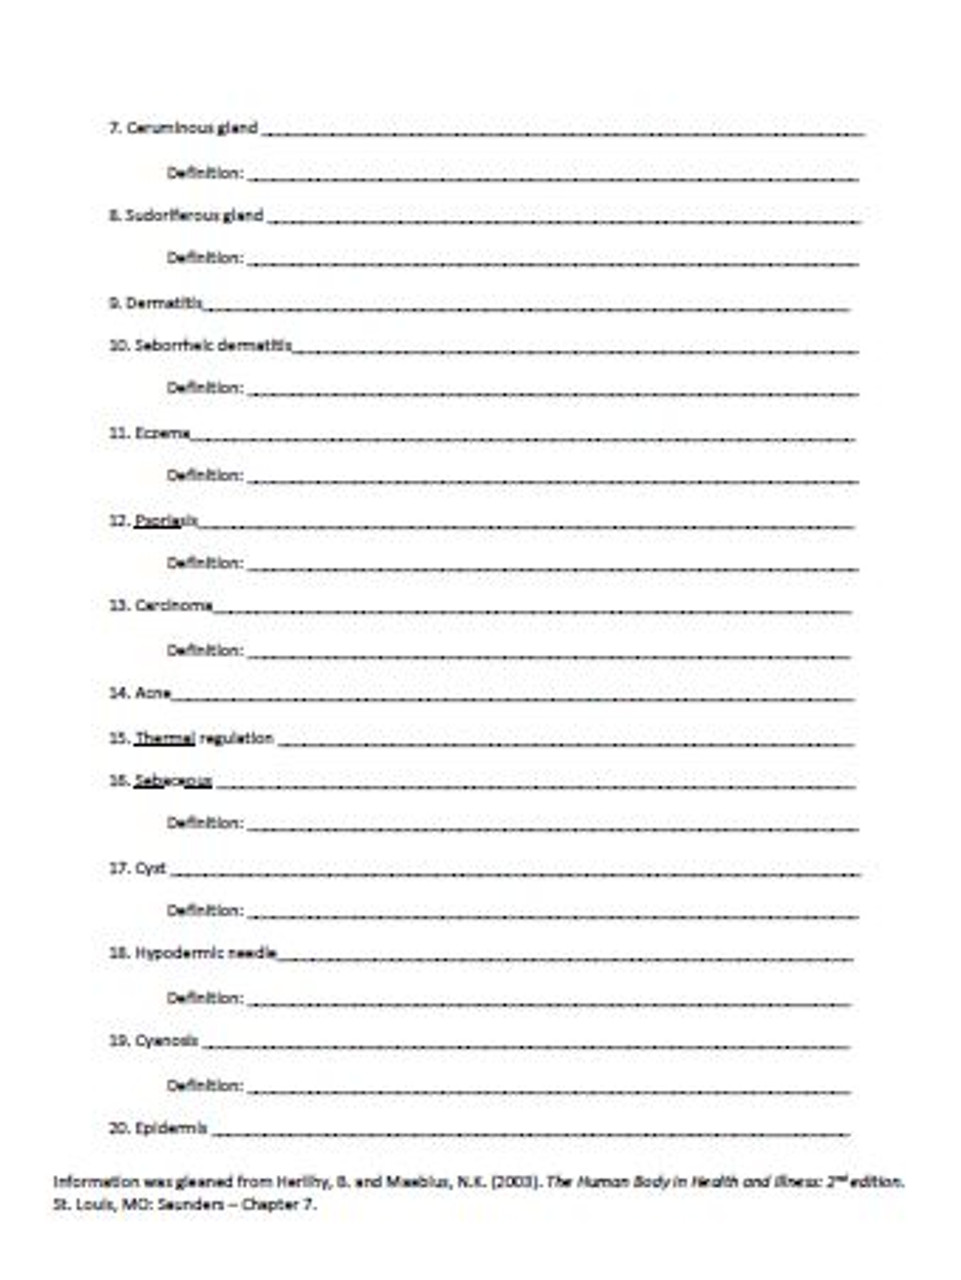 Integumentary System Latin Root Word Worksheet - Amped Up Learning [ 1280 x 961 Pixel ]